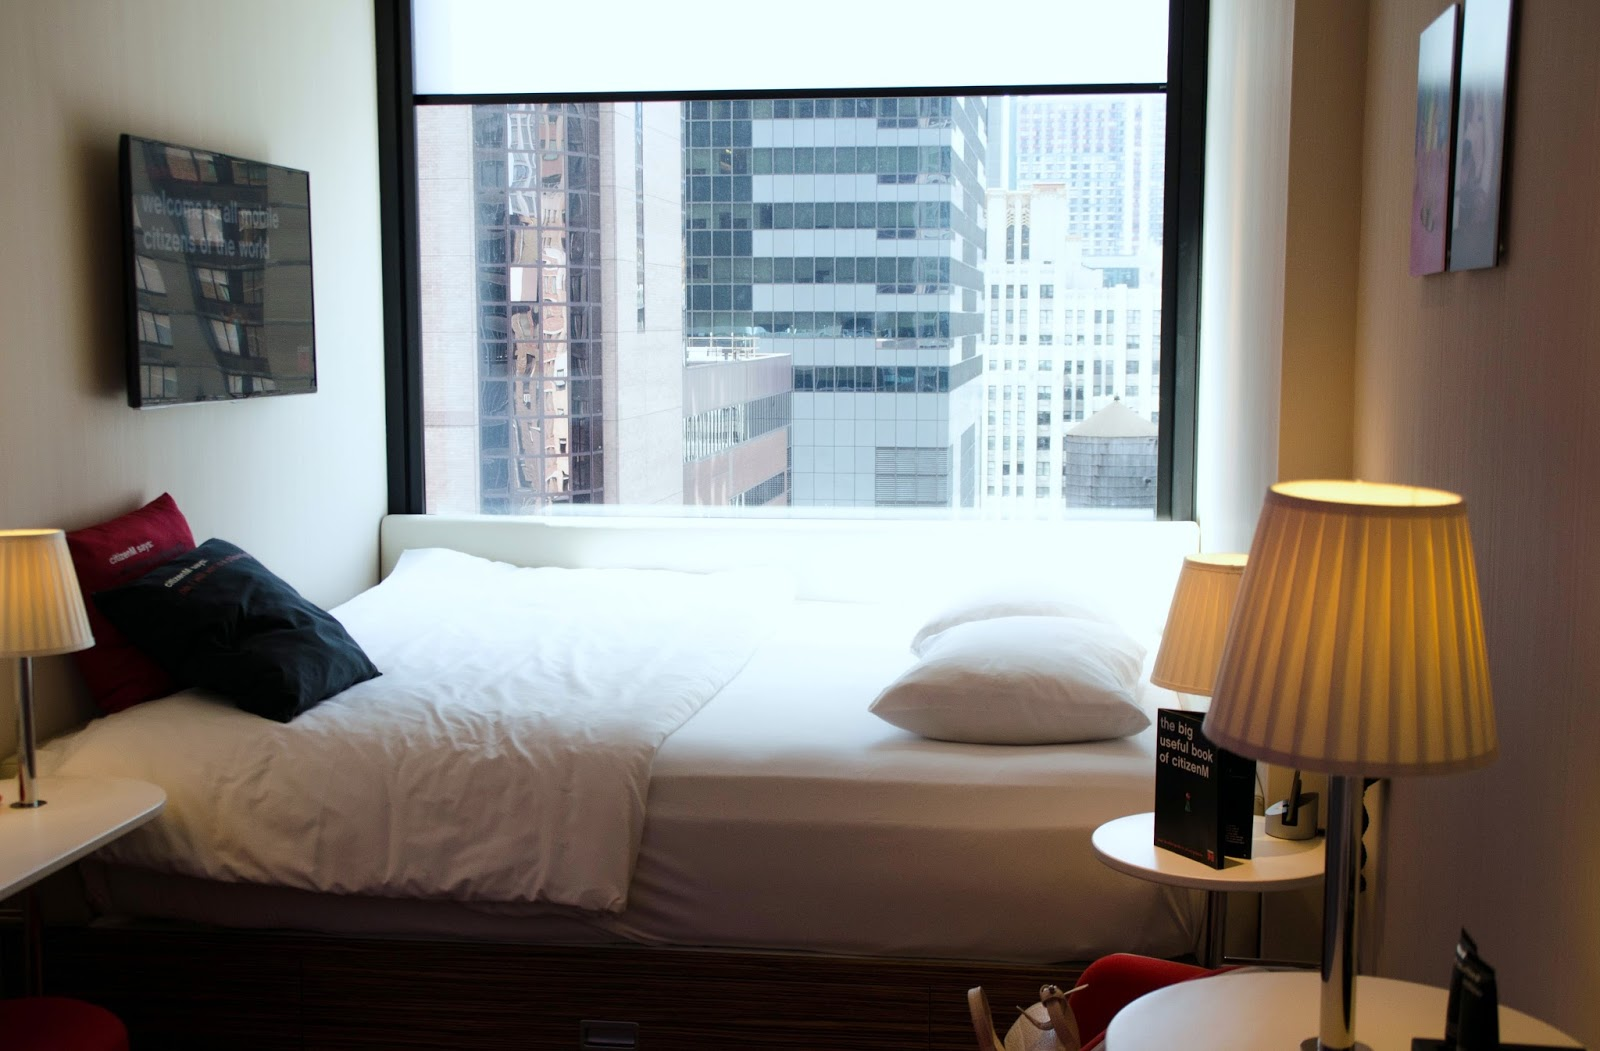 citizenm new york times square hotel room